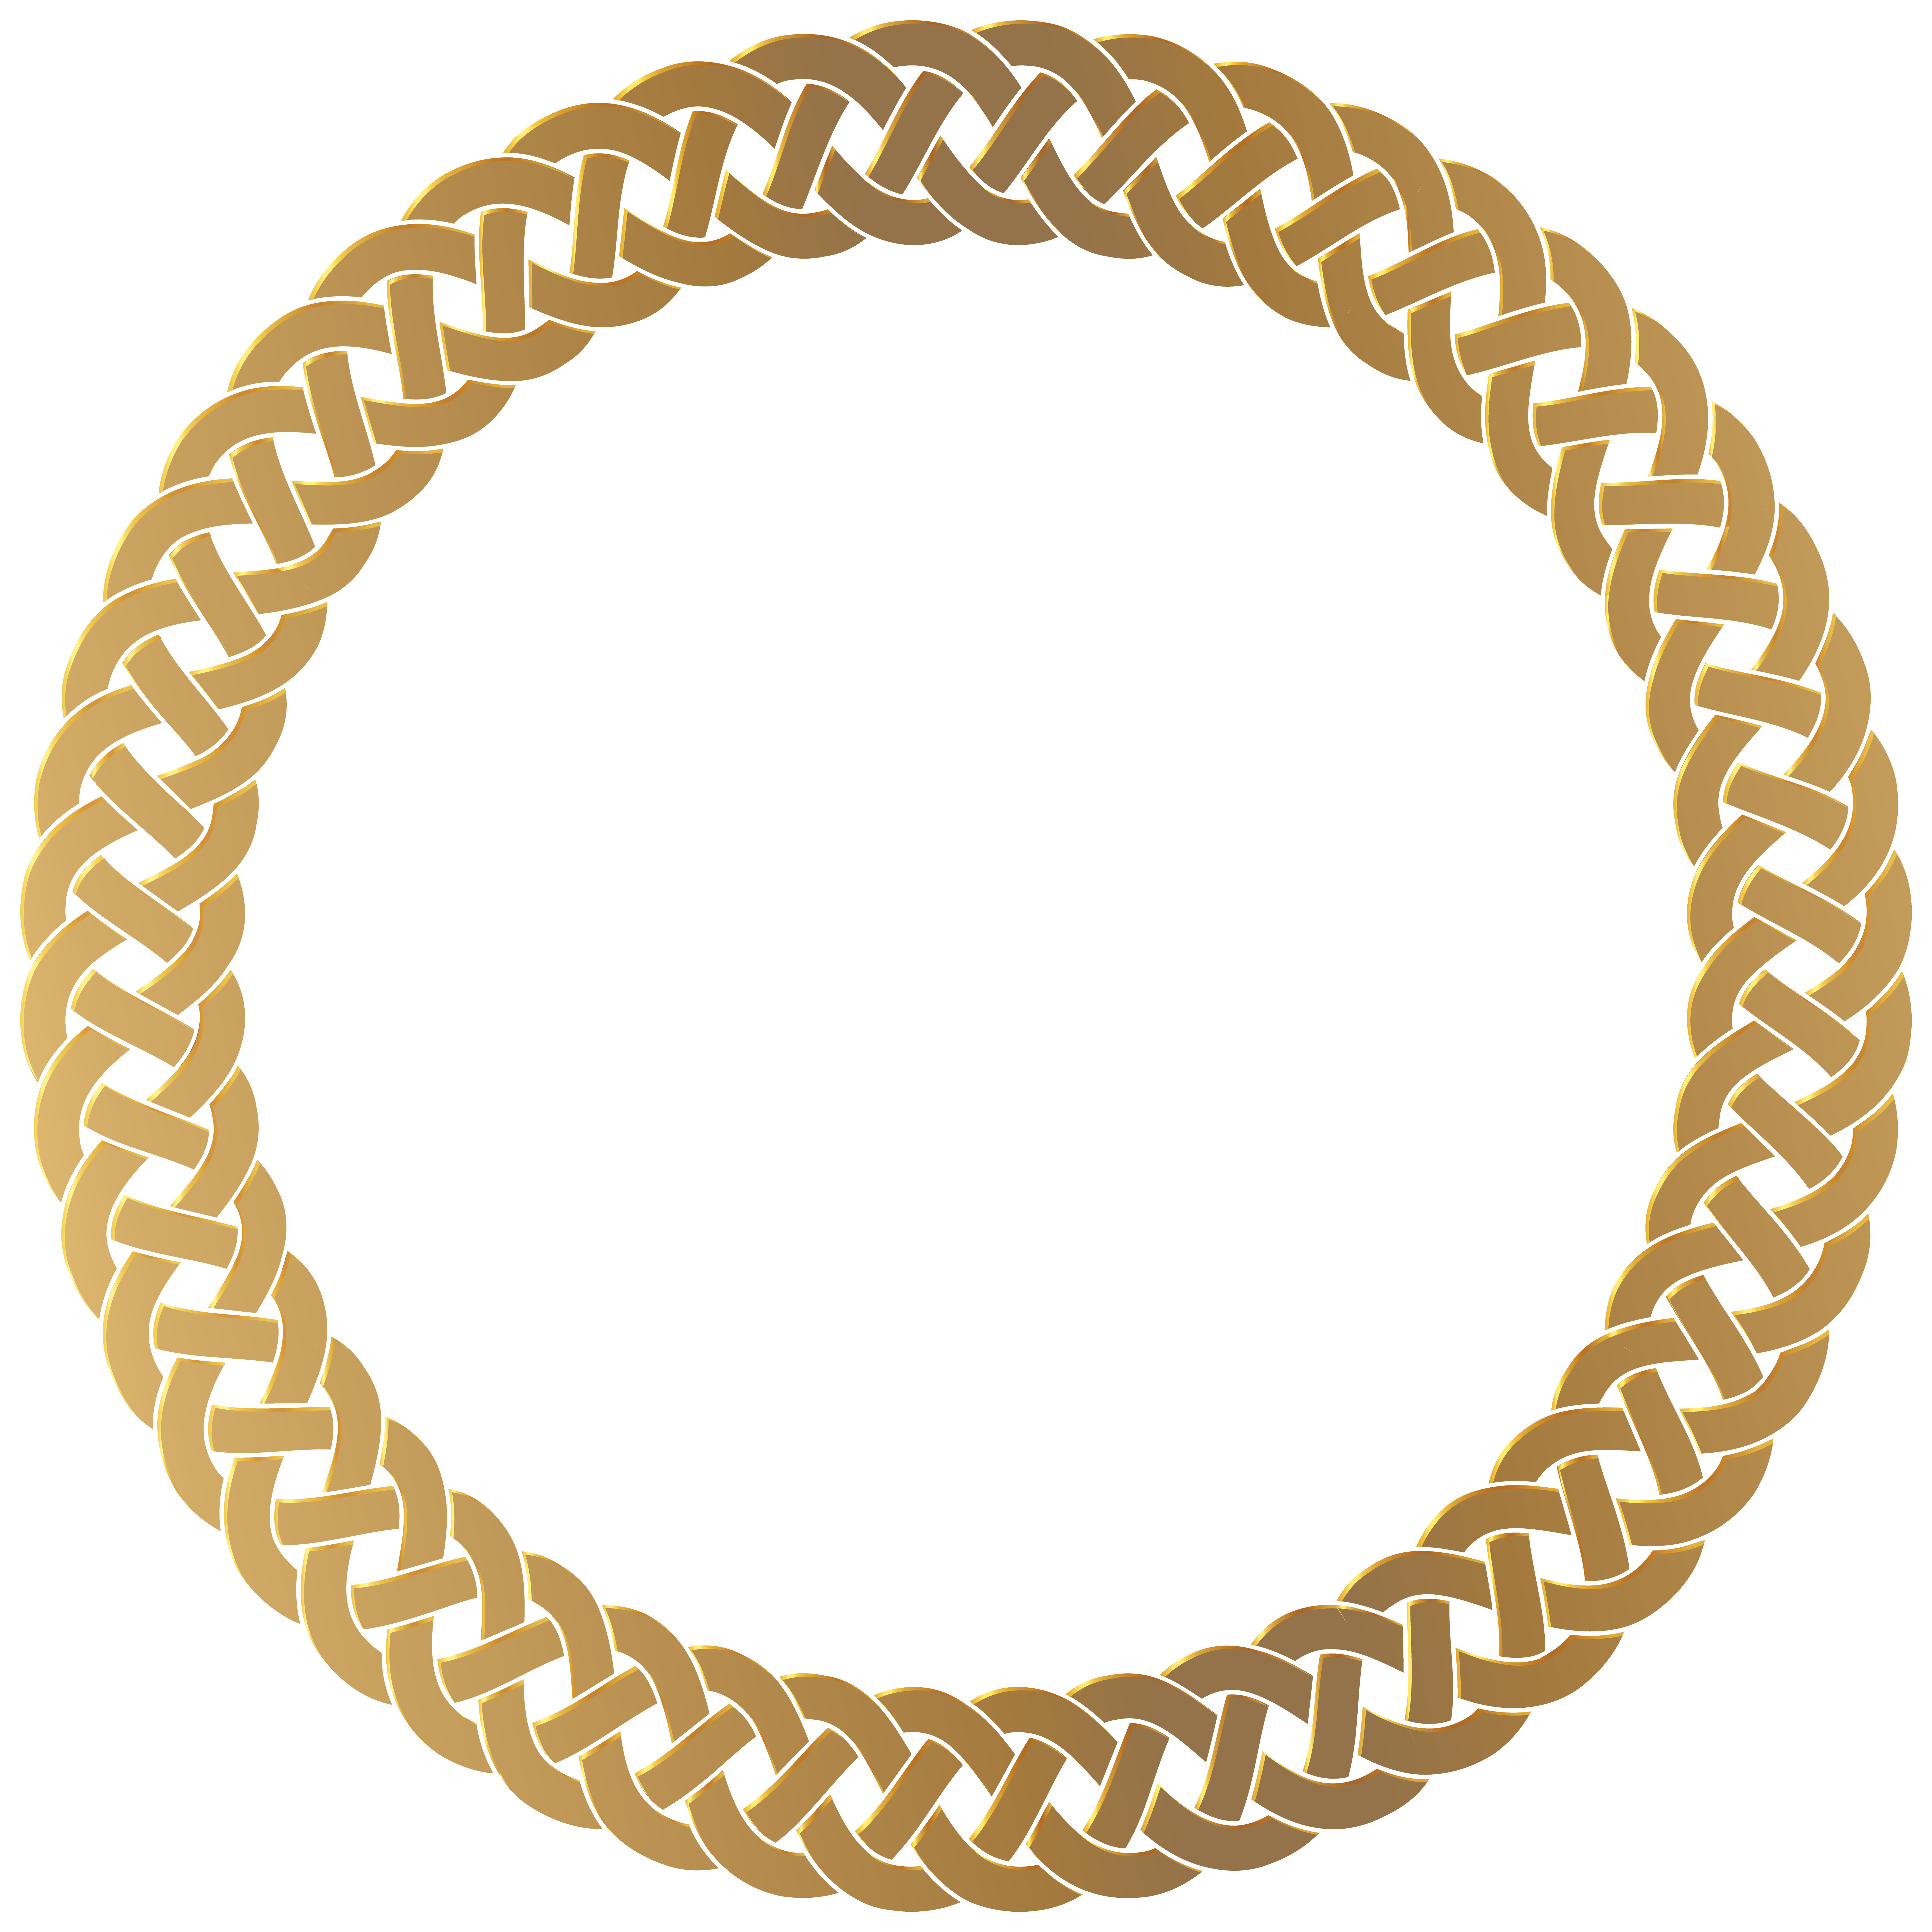 Golden round frame transparent. Surprise clipart border